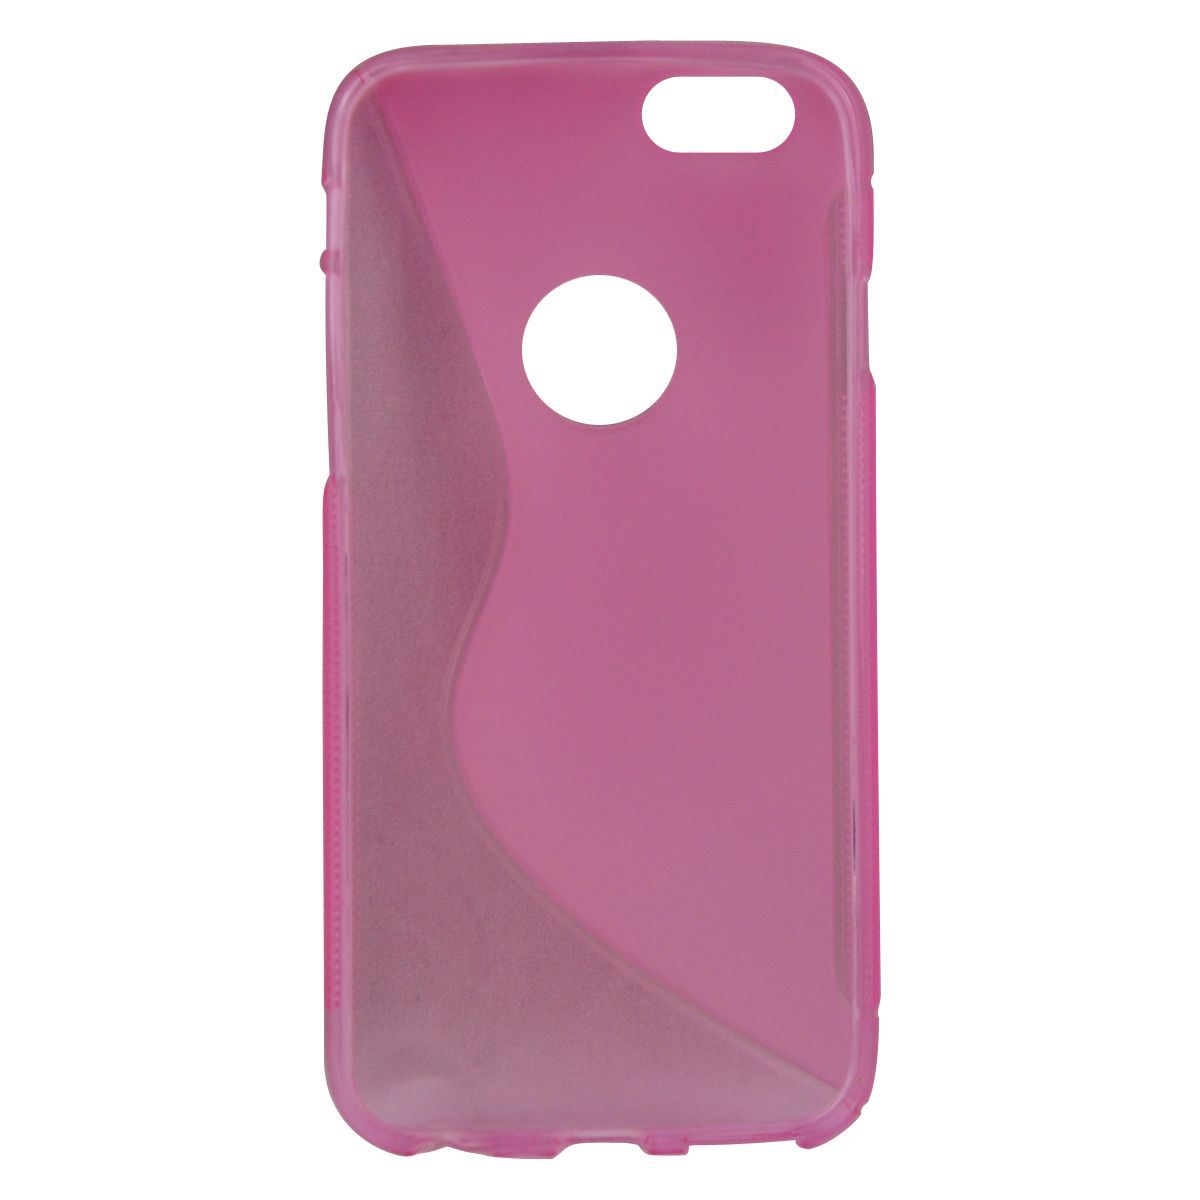 For Apple iPhone 5g Housing Pink Colour | 0.99 dollar for one phone ...